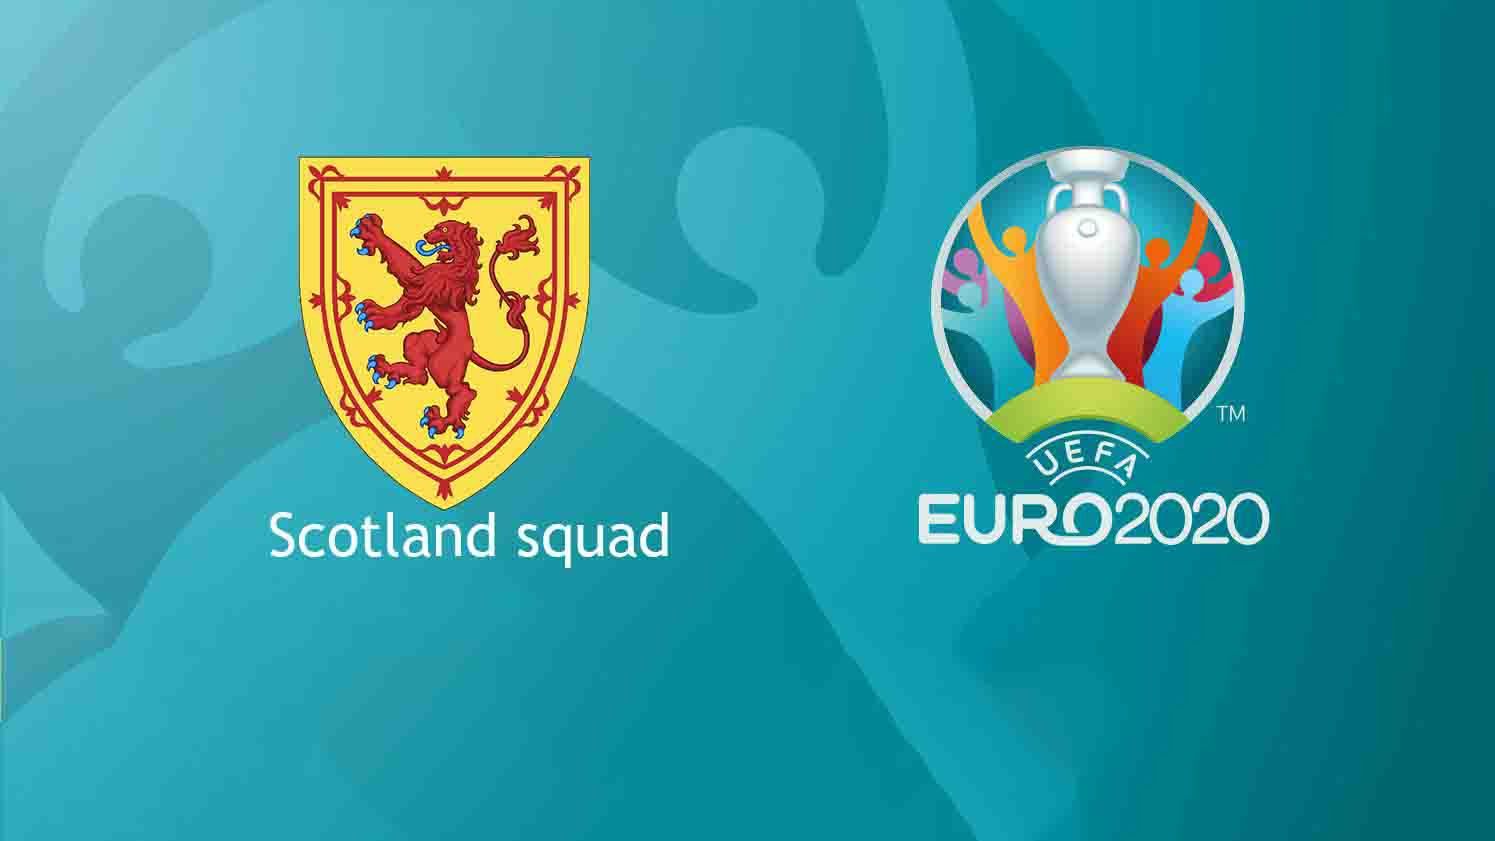 Euro 2020 Billy Gilmour, David Turnbull & Nathan Patterson in Scotland squad